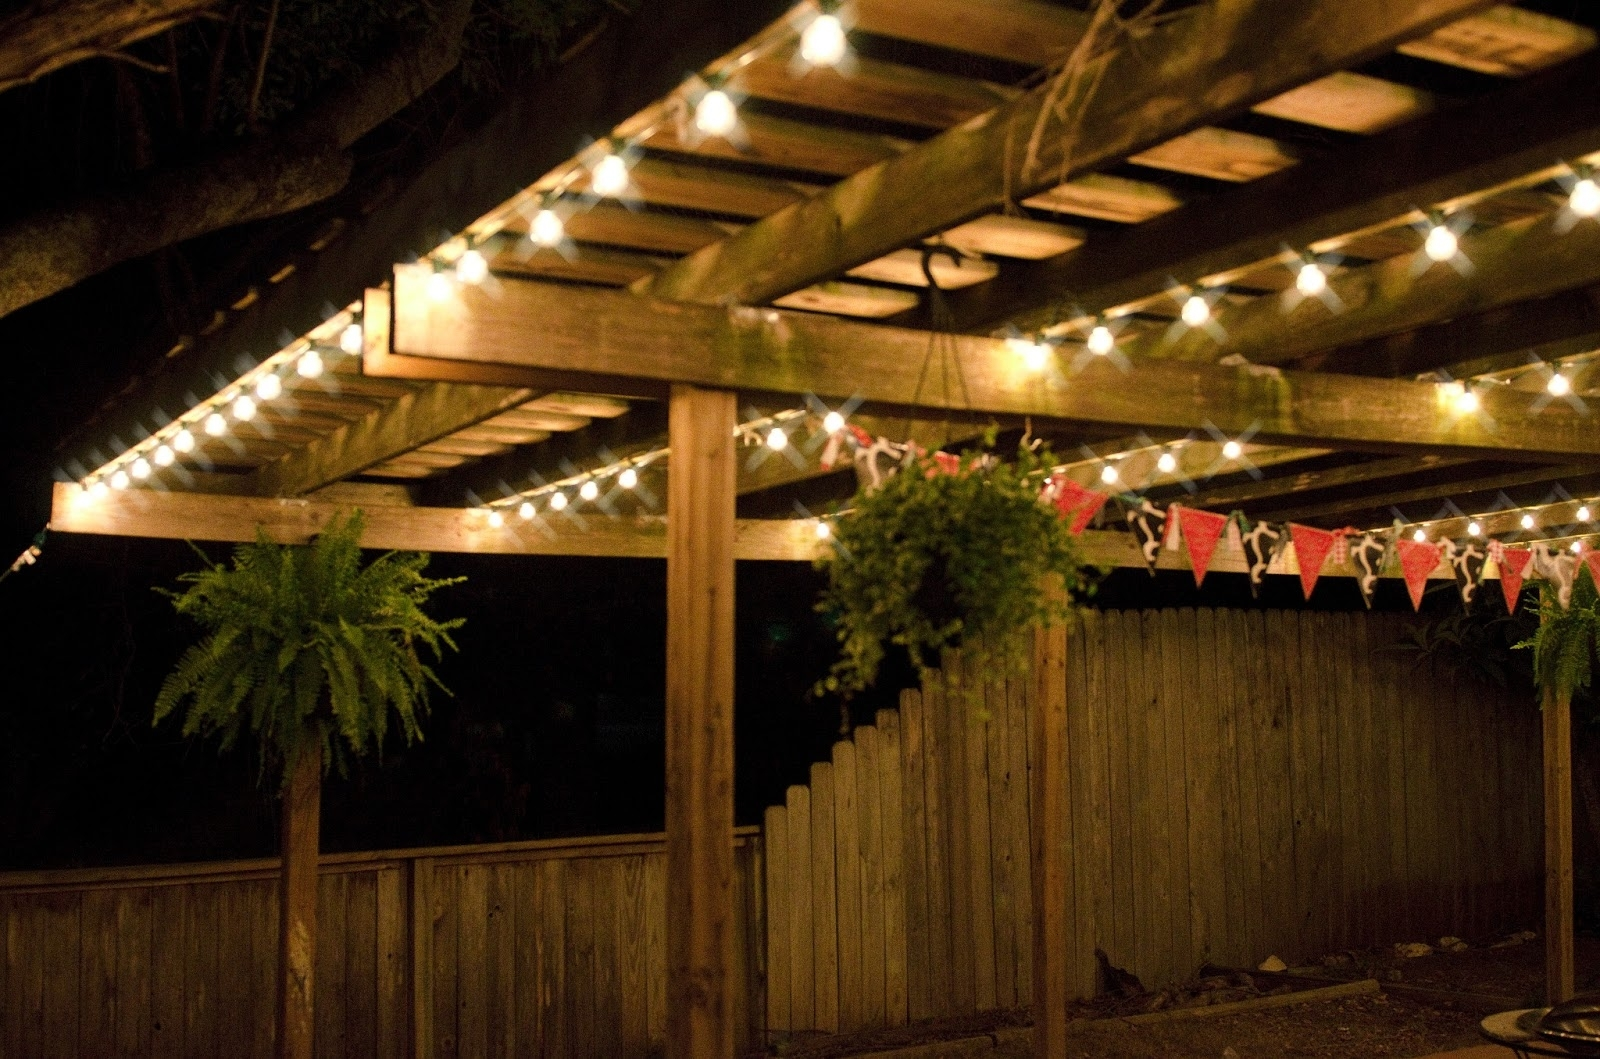 Amazing Of Hanging Patio Lights How To Hang String With Light Ideas With Regard To Outdoor String And Patio Lights (View 4 of 15)